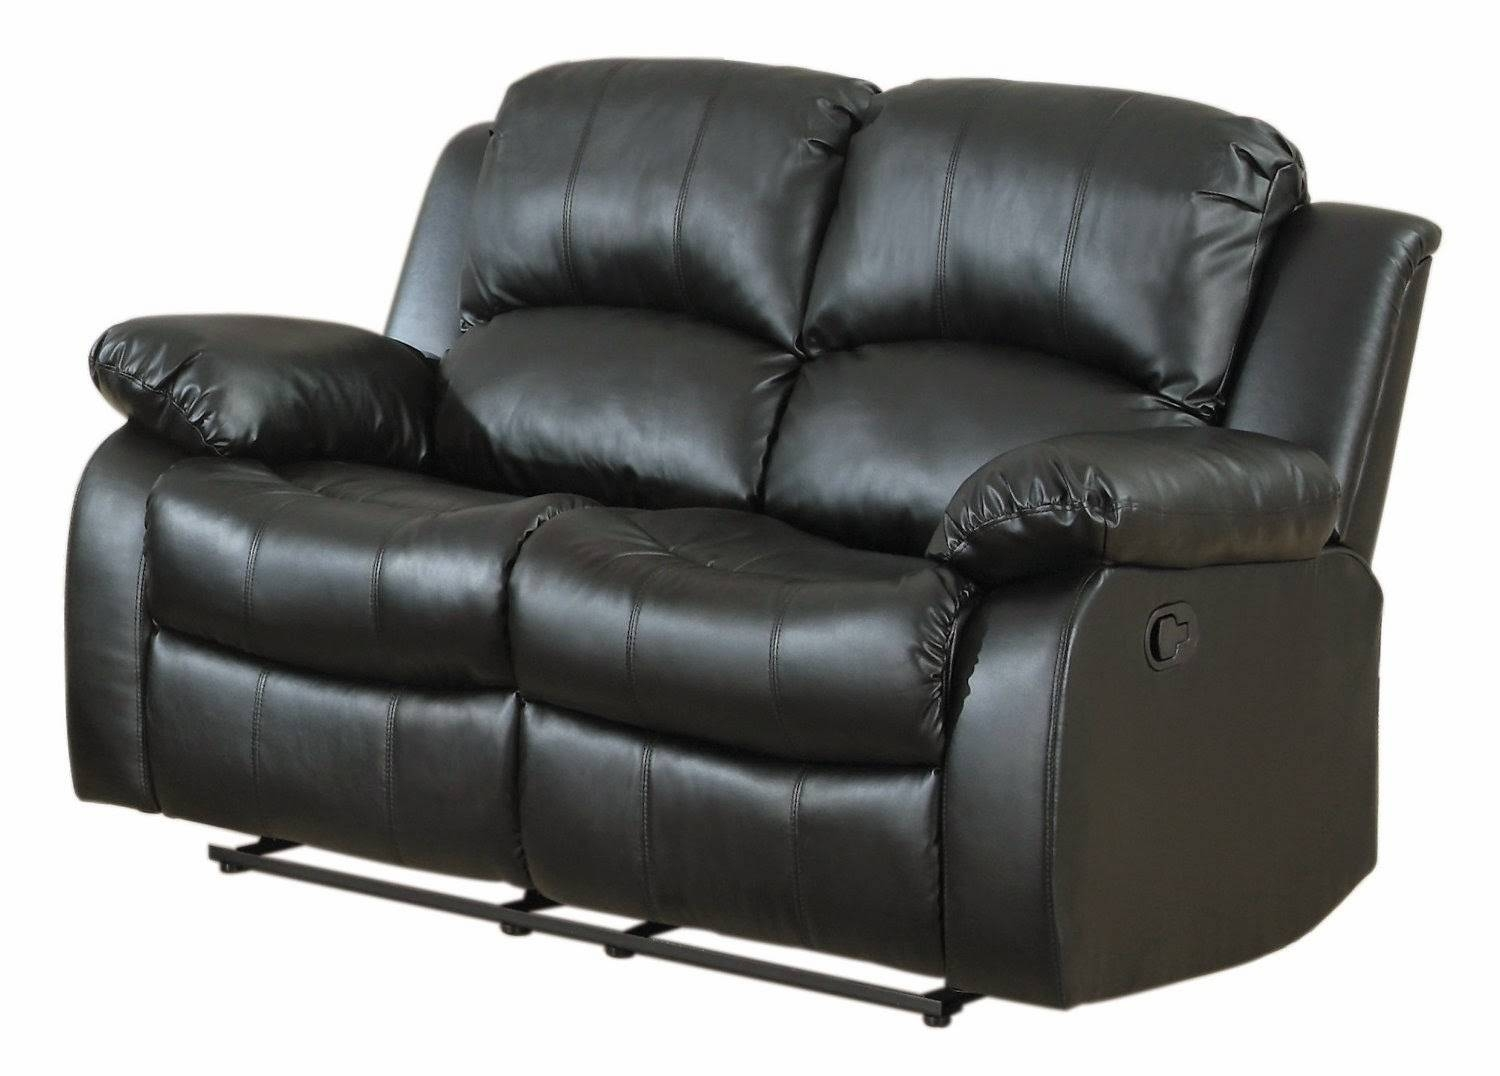 mckinley leather sofa costco recliner in chinese best 30 43 of berkline